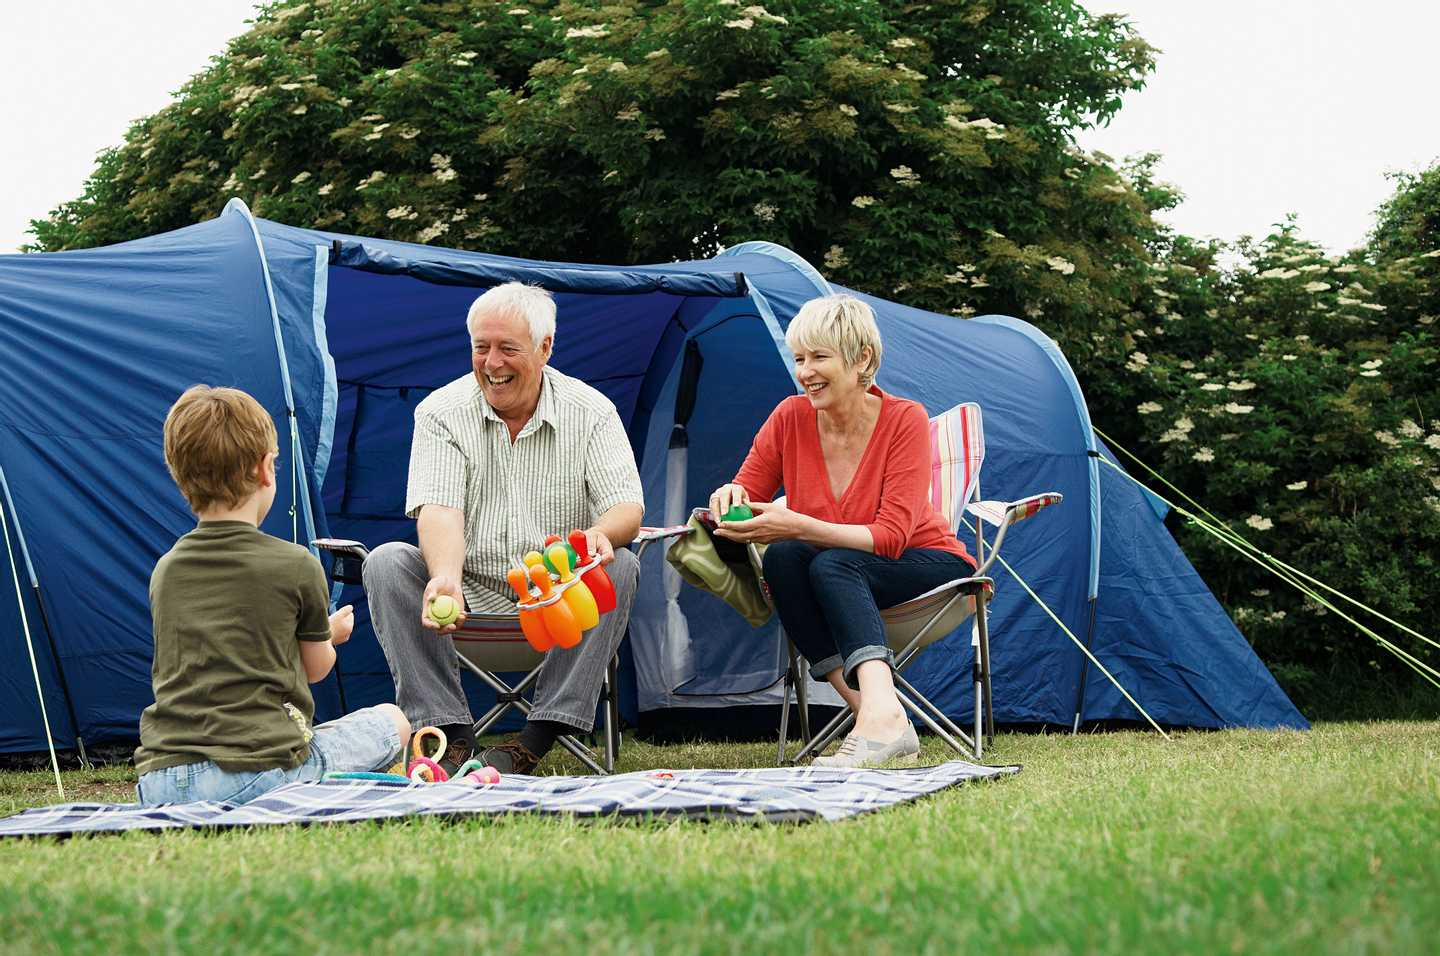 A pair of guests sitting outside their tent talking and laughing